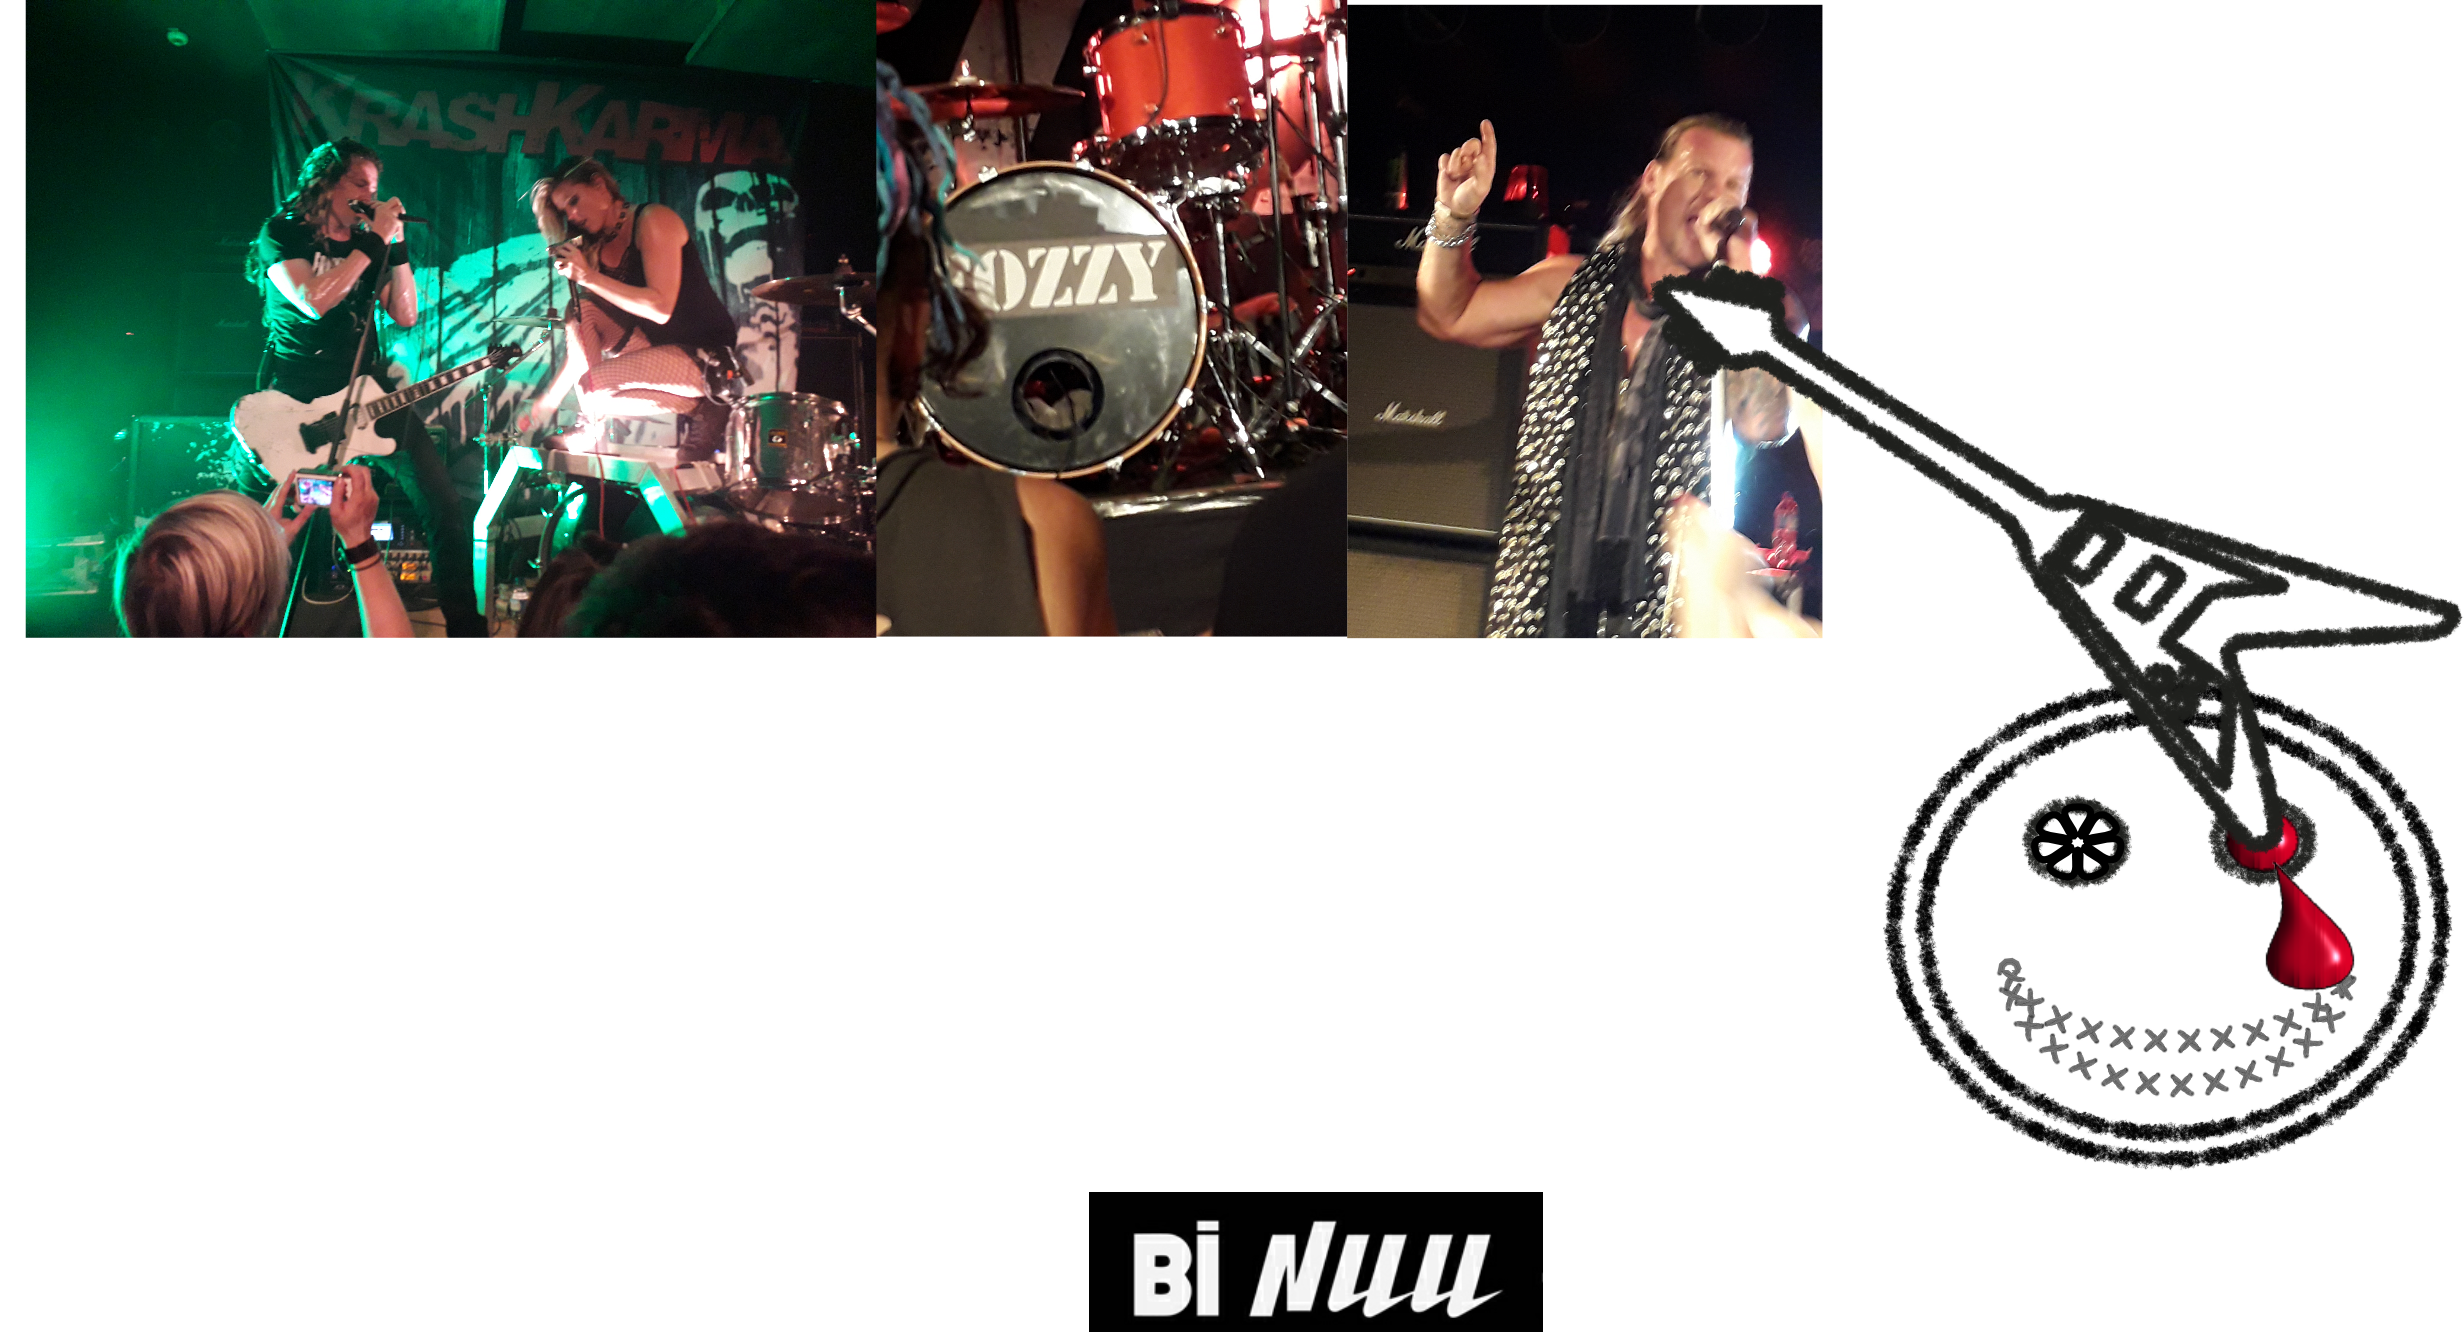 Review: Fozzy @ Bi Nuu, Berlin 4/8/18 by Graveyard